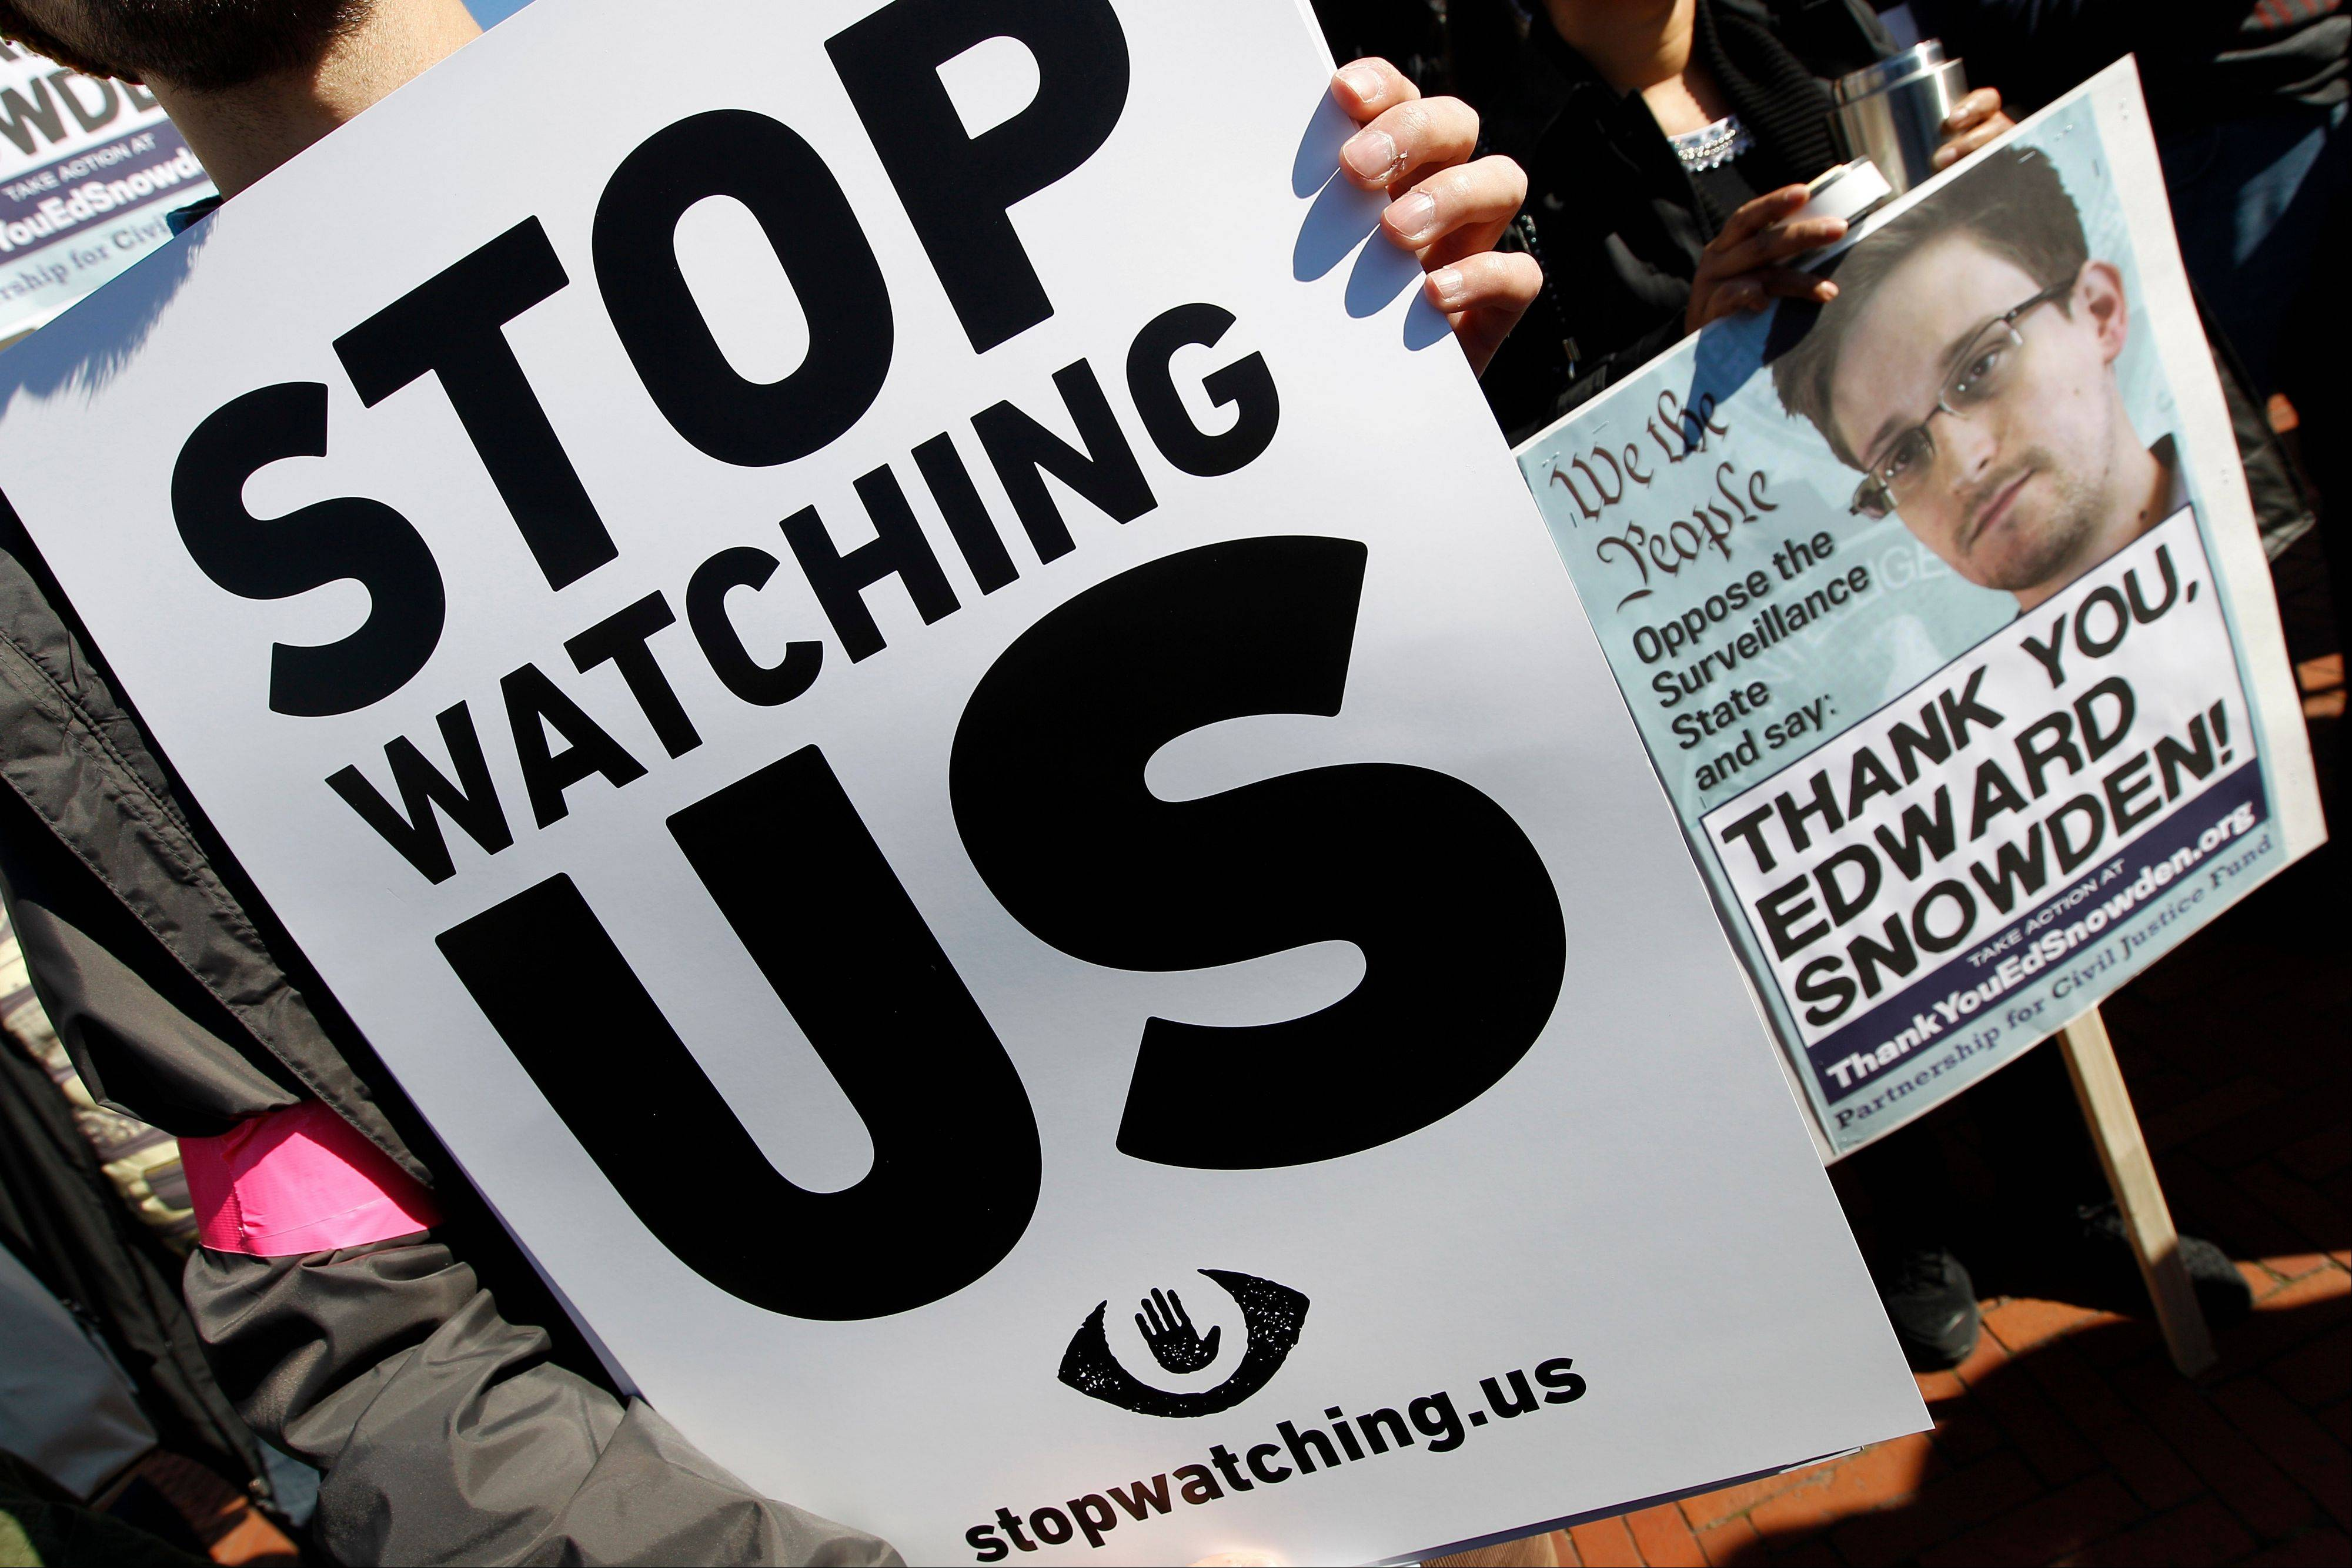 Demonstrators protested outside of the U.S. Capitol in Washington during a rally in October to demand that Congress investigate the National Security Agency's mass surveillance programs.